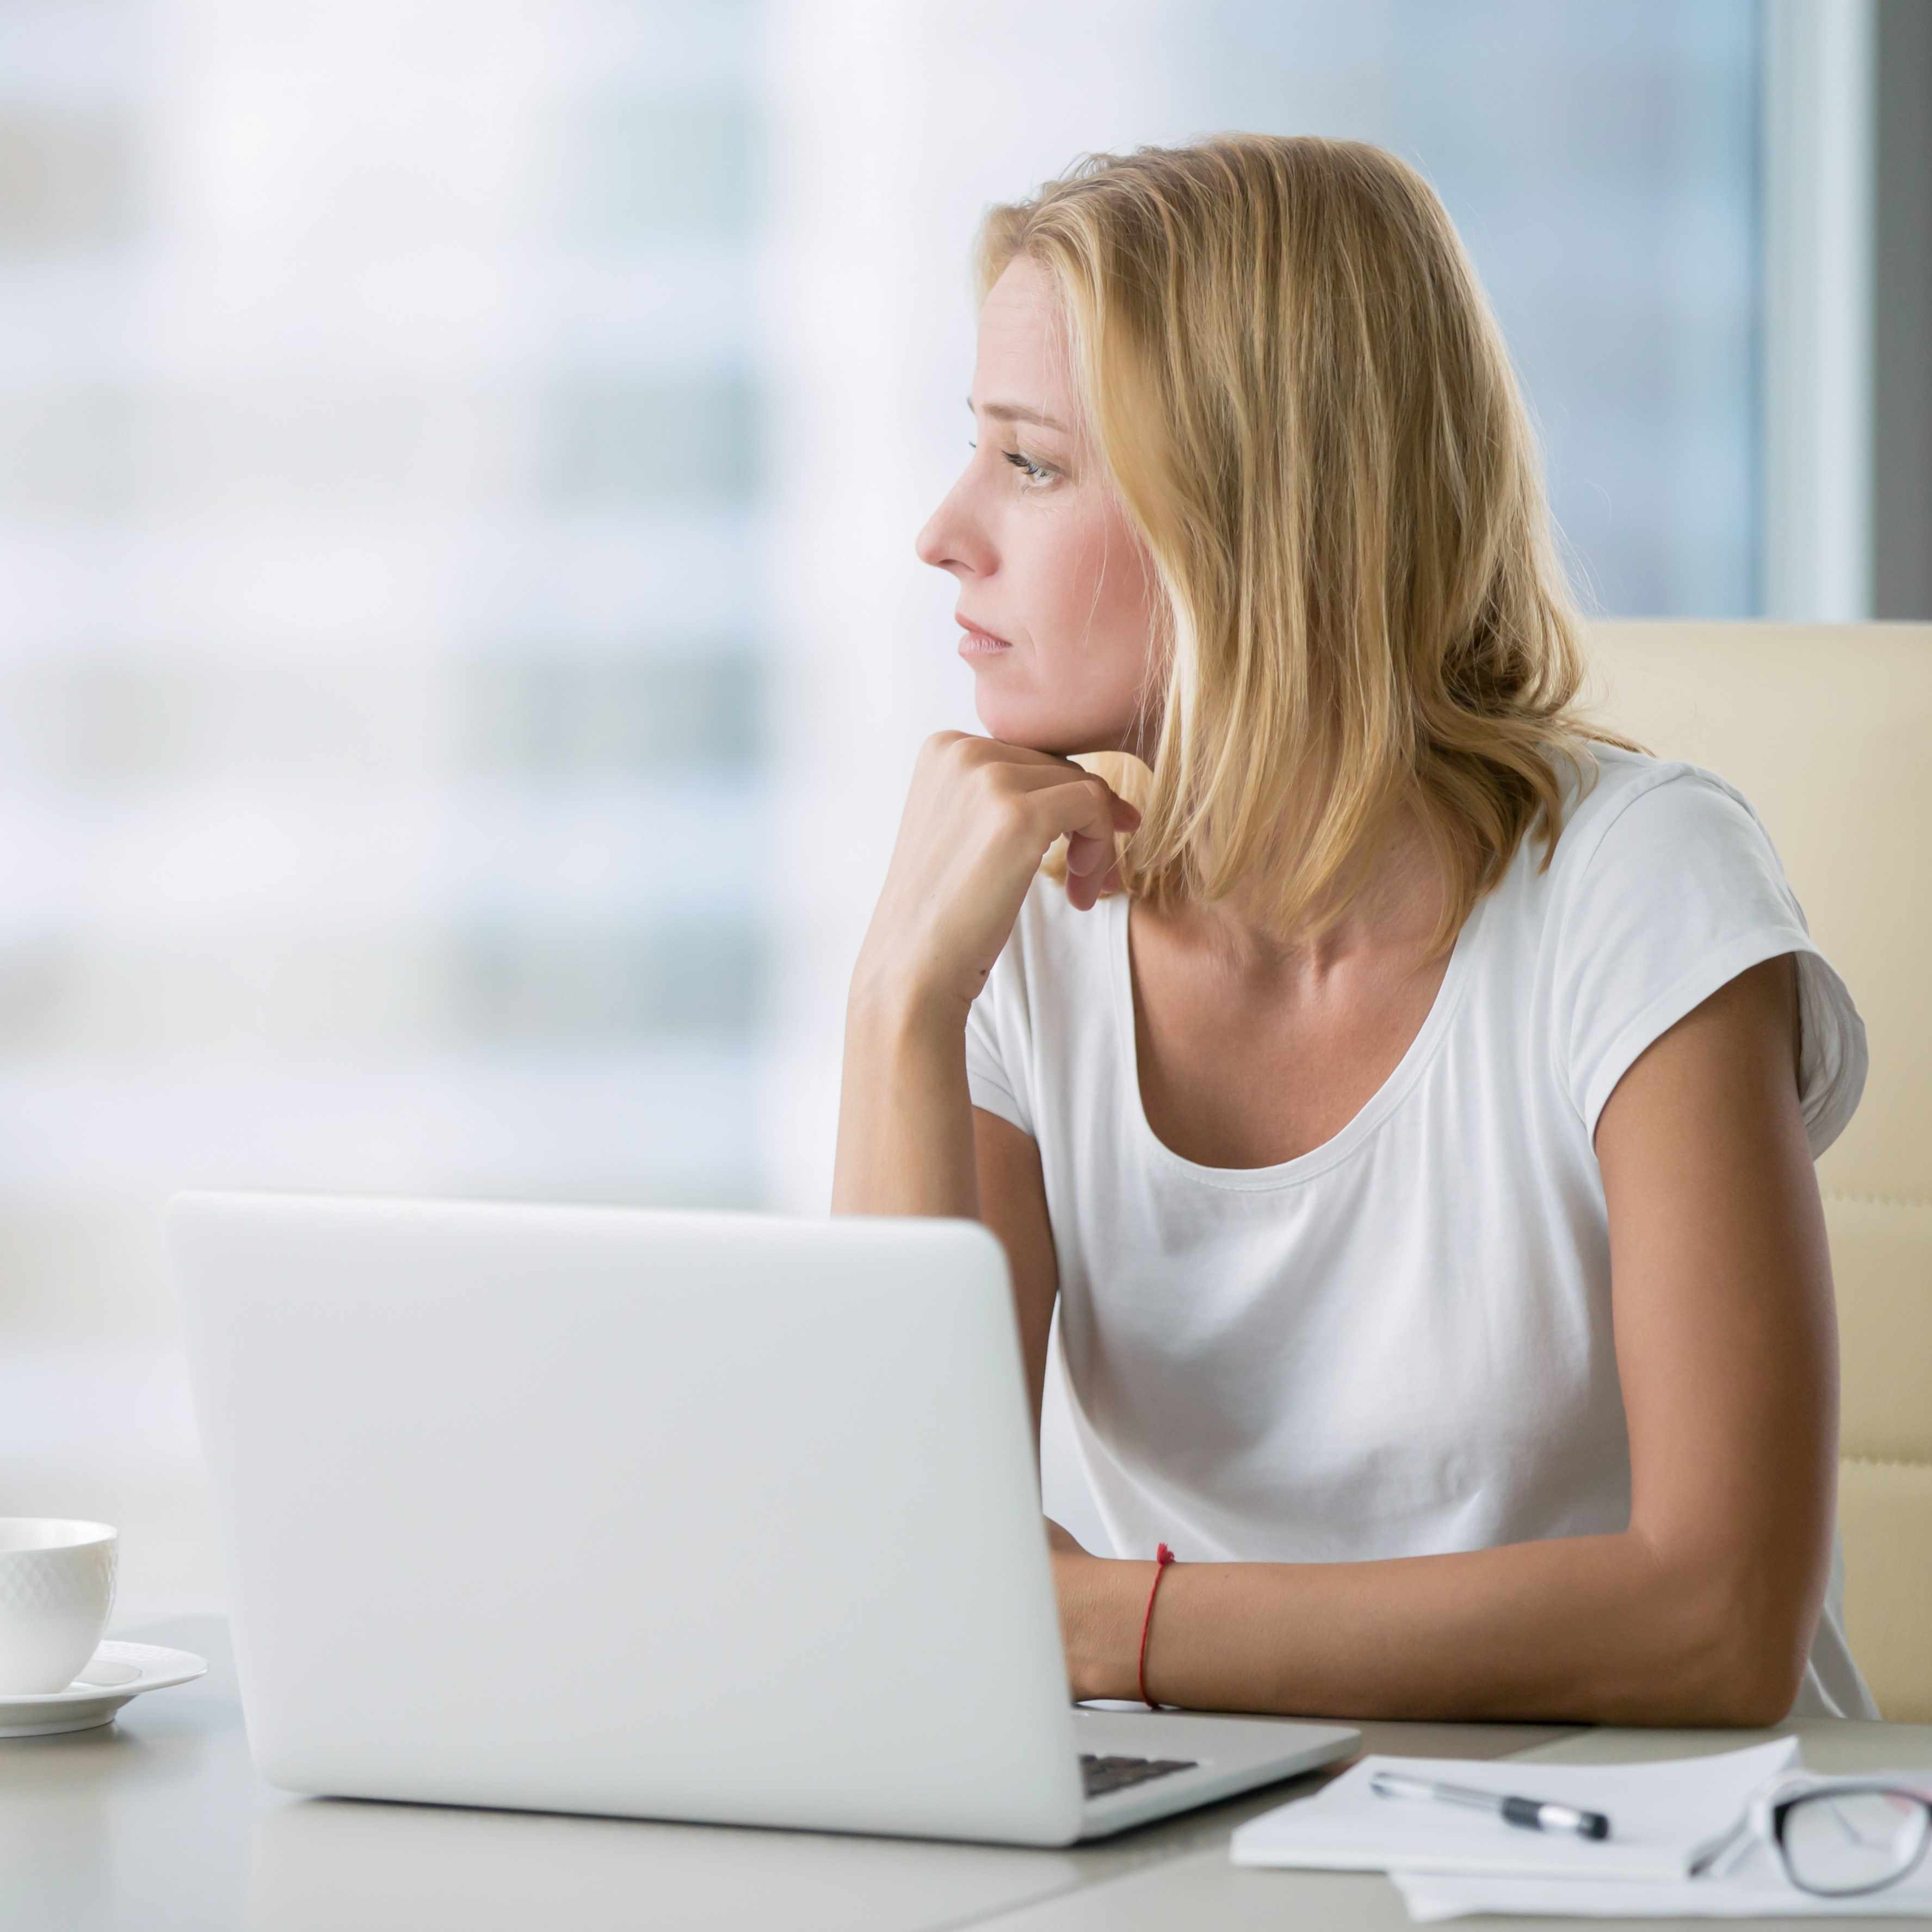 a young woman sitting at a desk with a computer looking thoughtfully out a window, perhaps sad